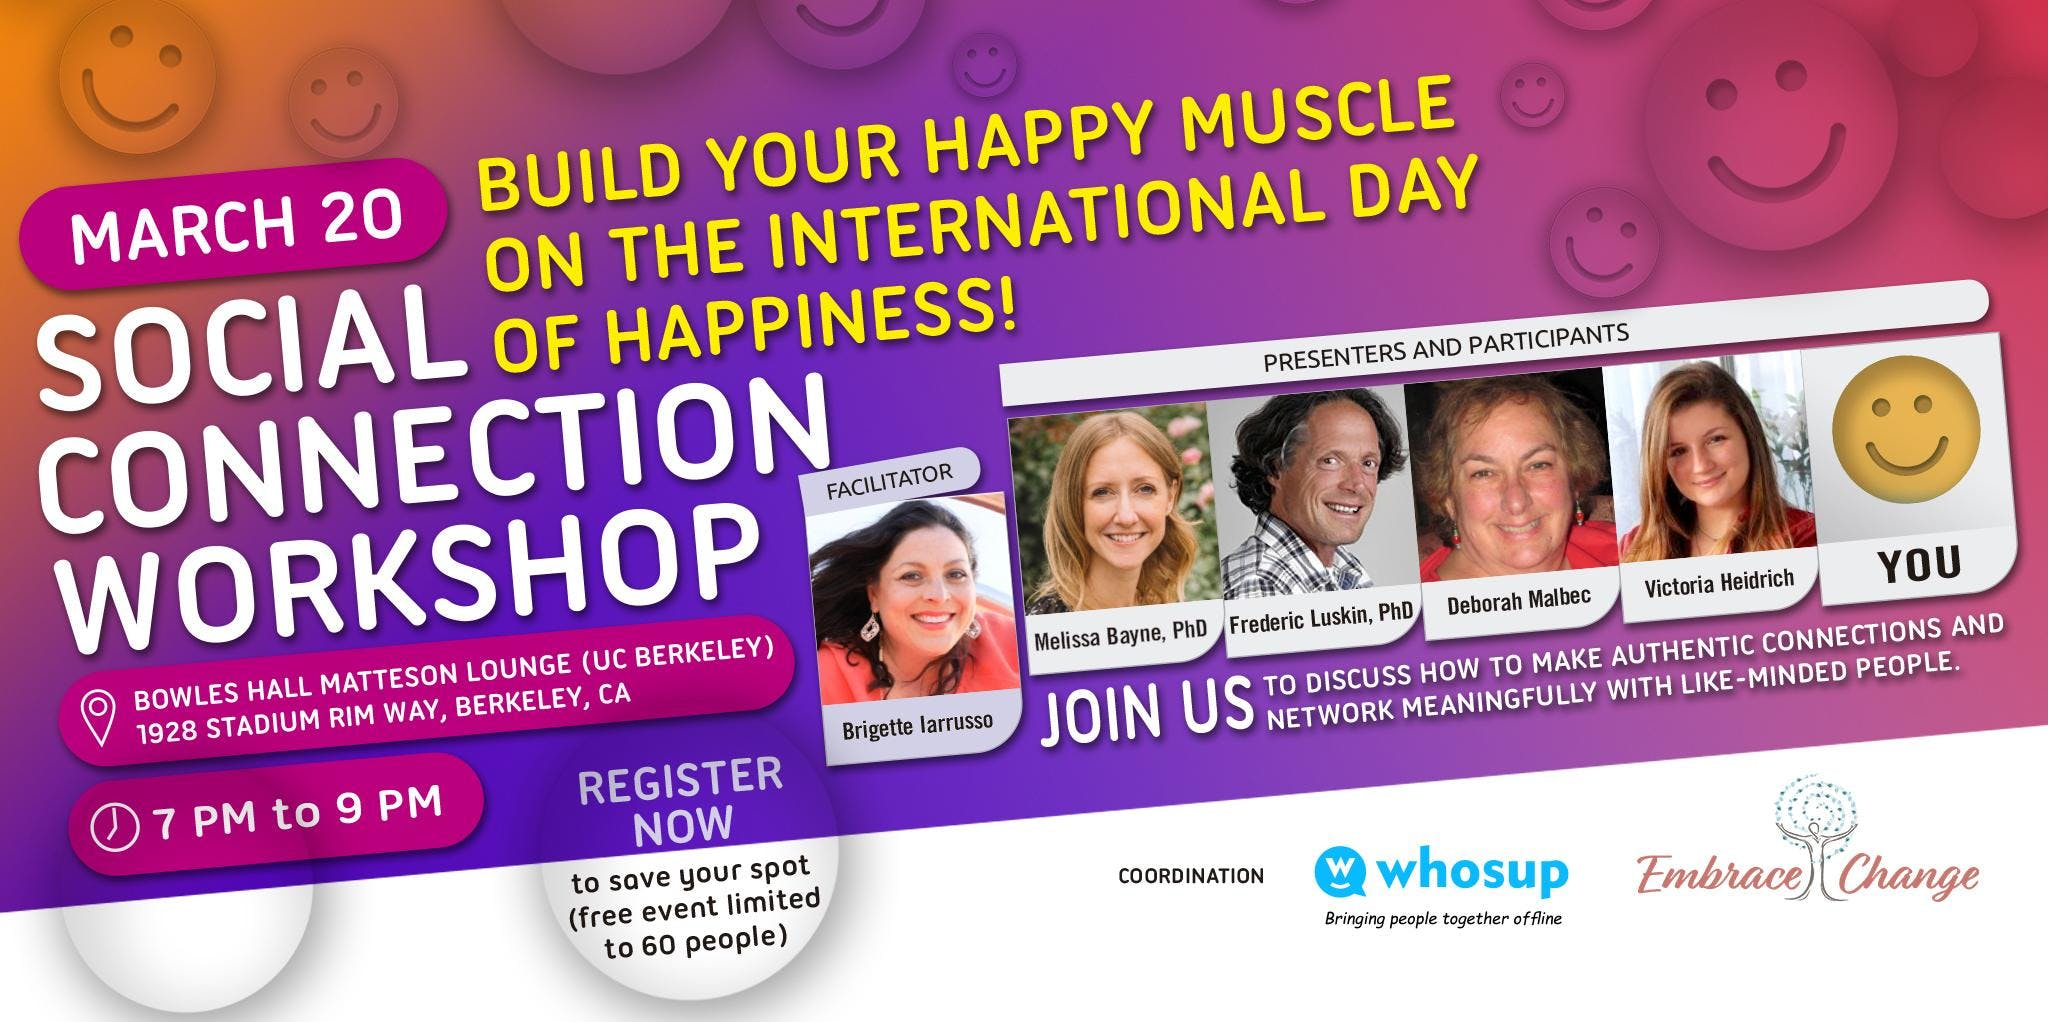 Social Connection Workshop: Build your happy muscle on the International Day of Happiness!